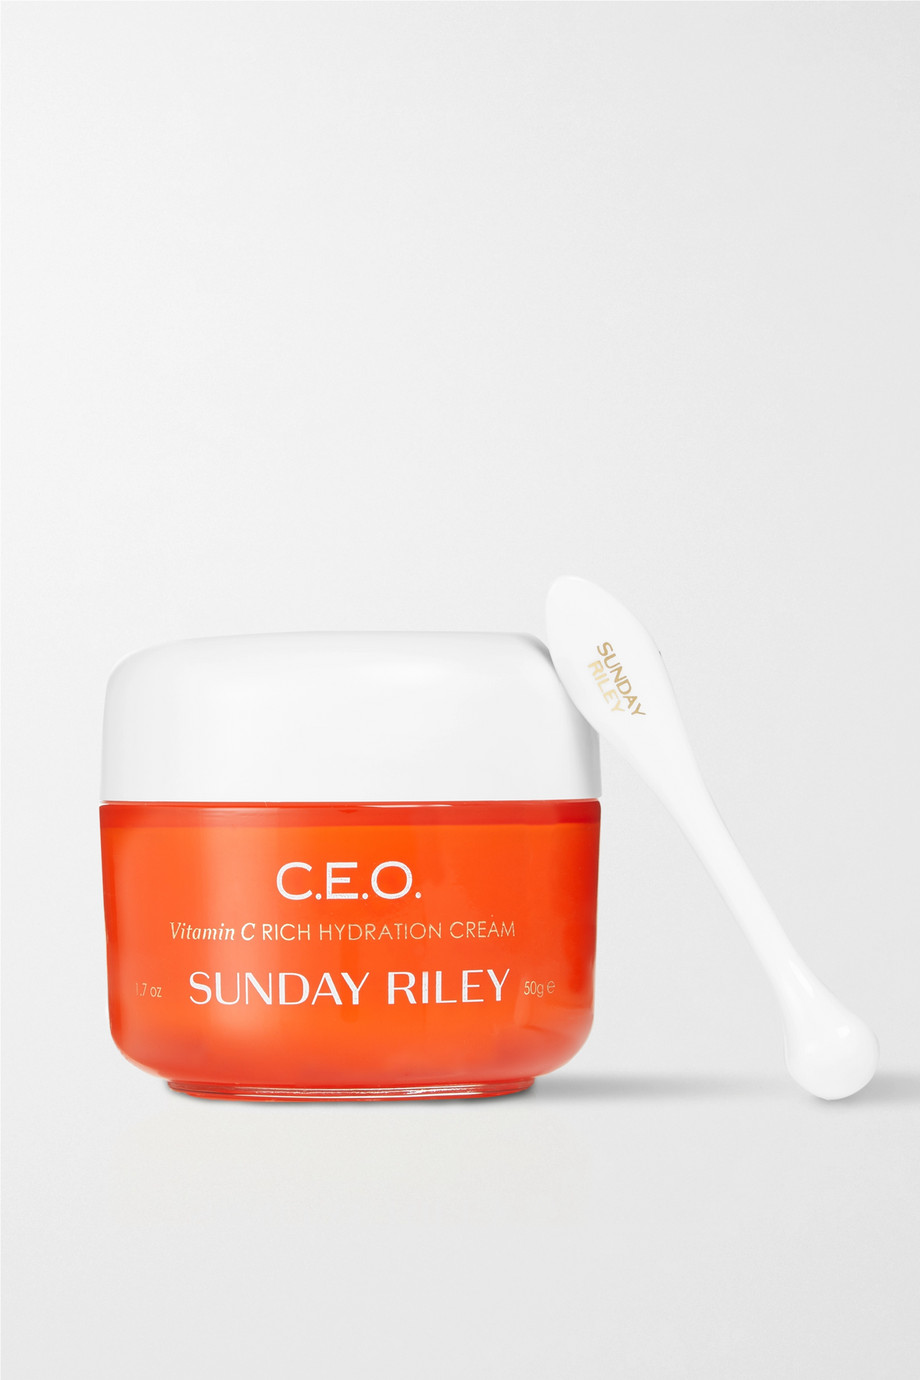 Sunday Riley C.E.O. Vitamin C Rich Hydration Cream, 50g